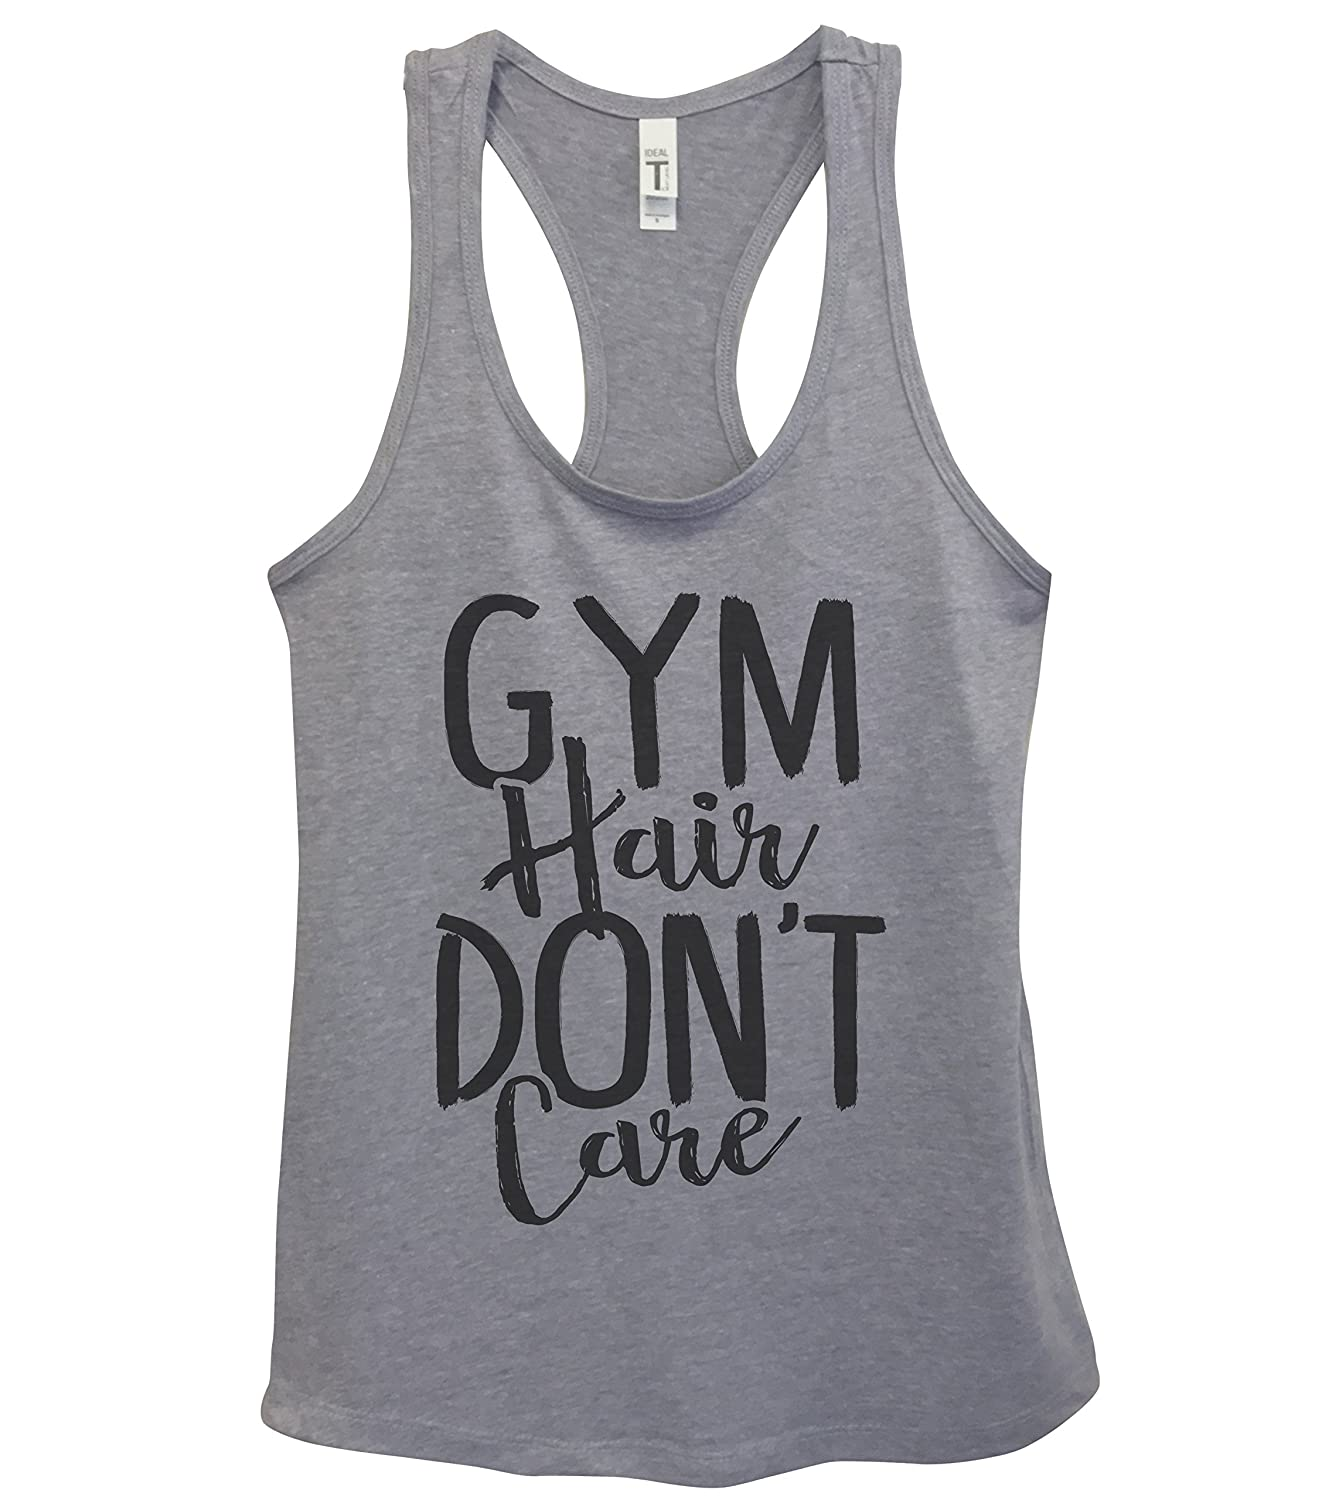 Yoga Royaltee Tank Tops Funny Womens Work Out Tanks Gym Hair Dont Care